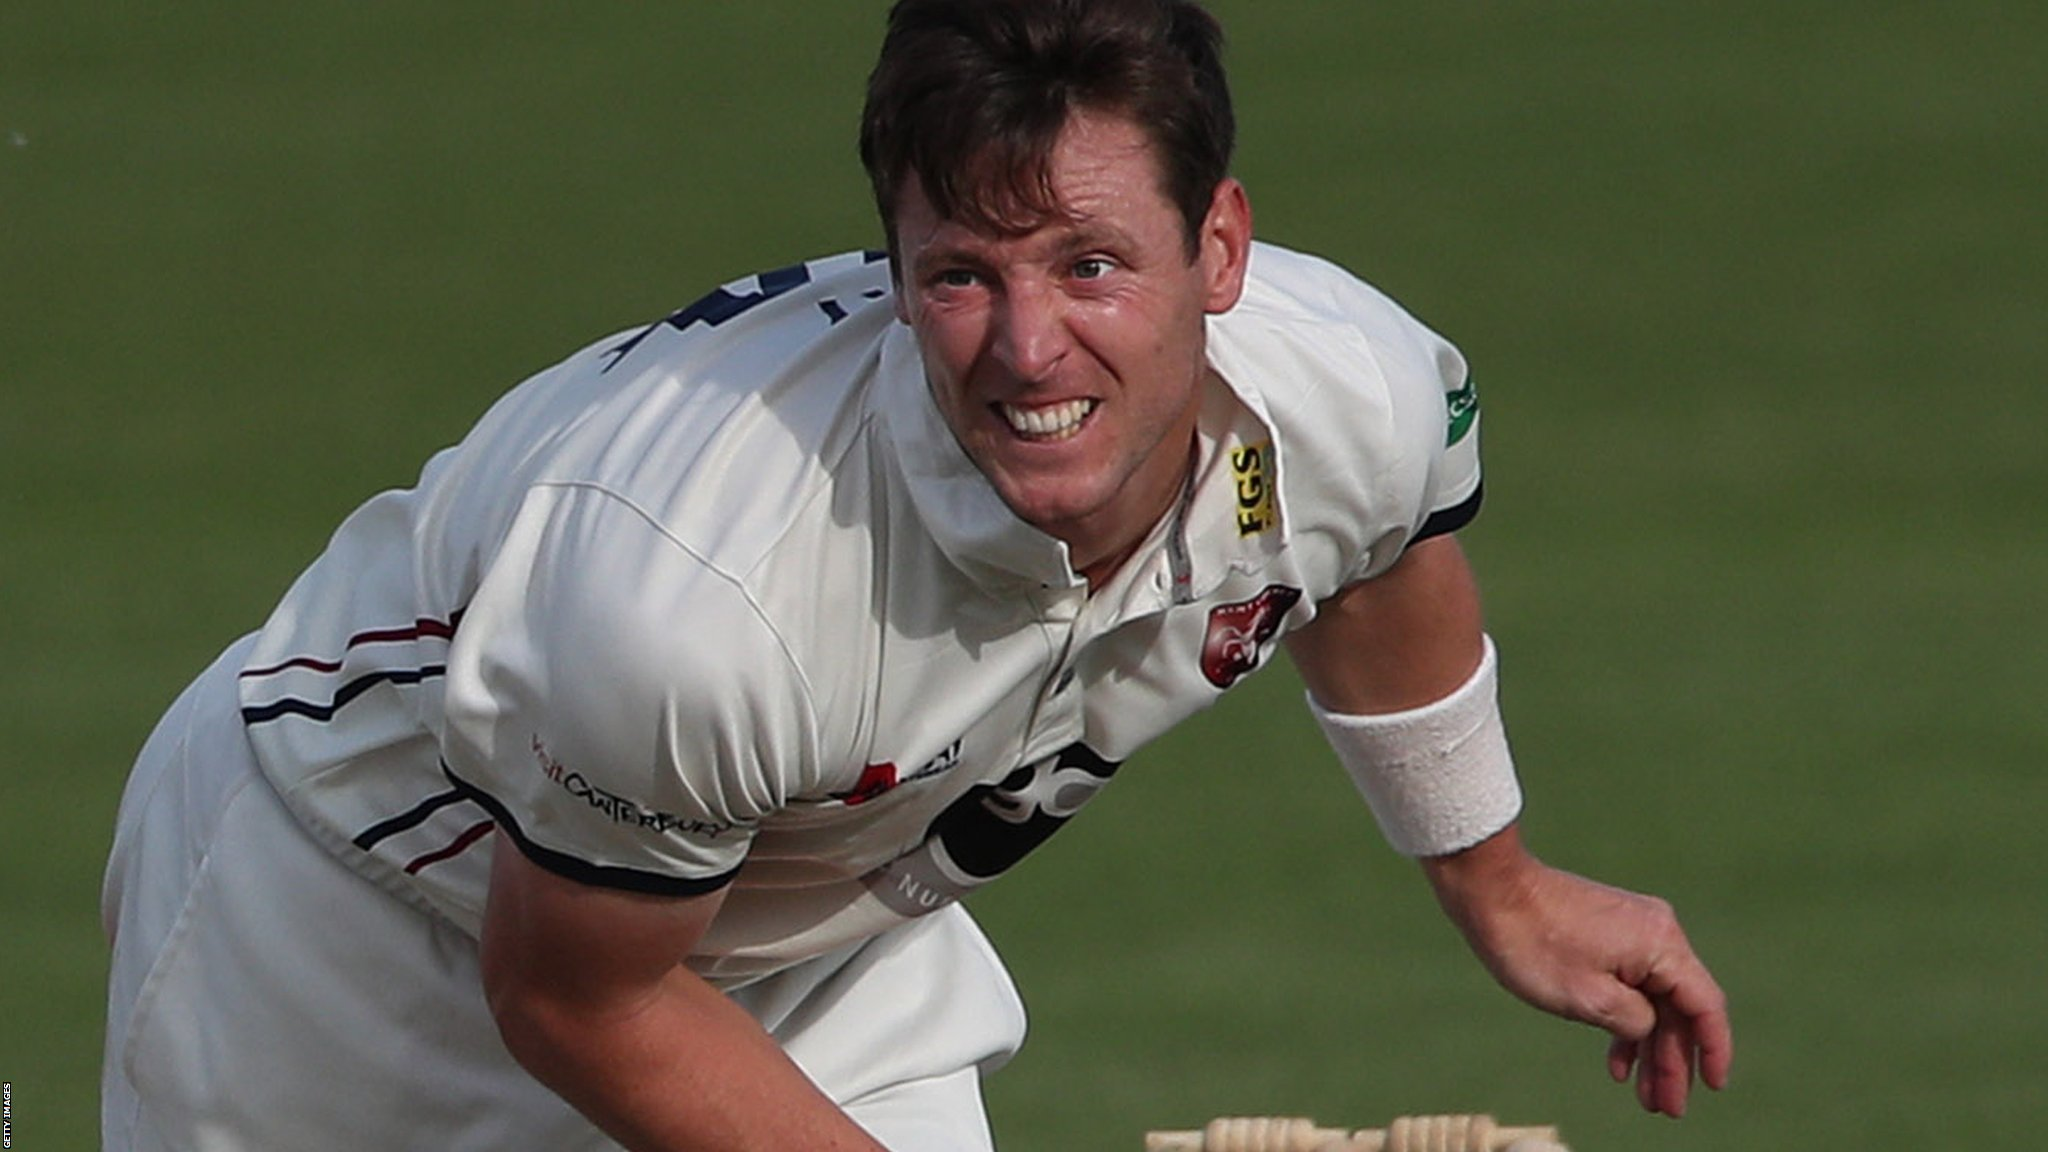 County Championship: Matt Henry puts Kent in control against Glamorgan